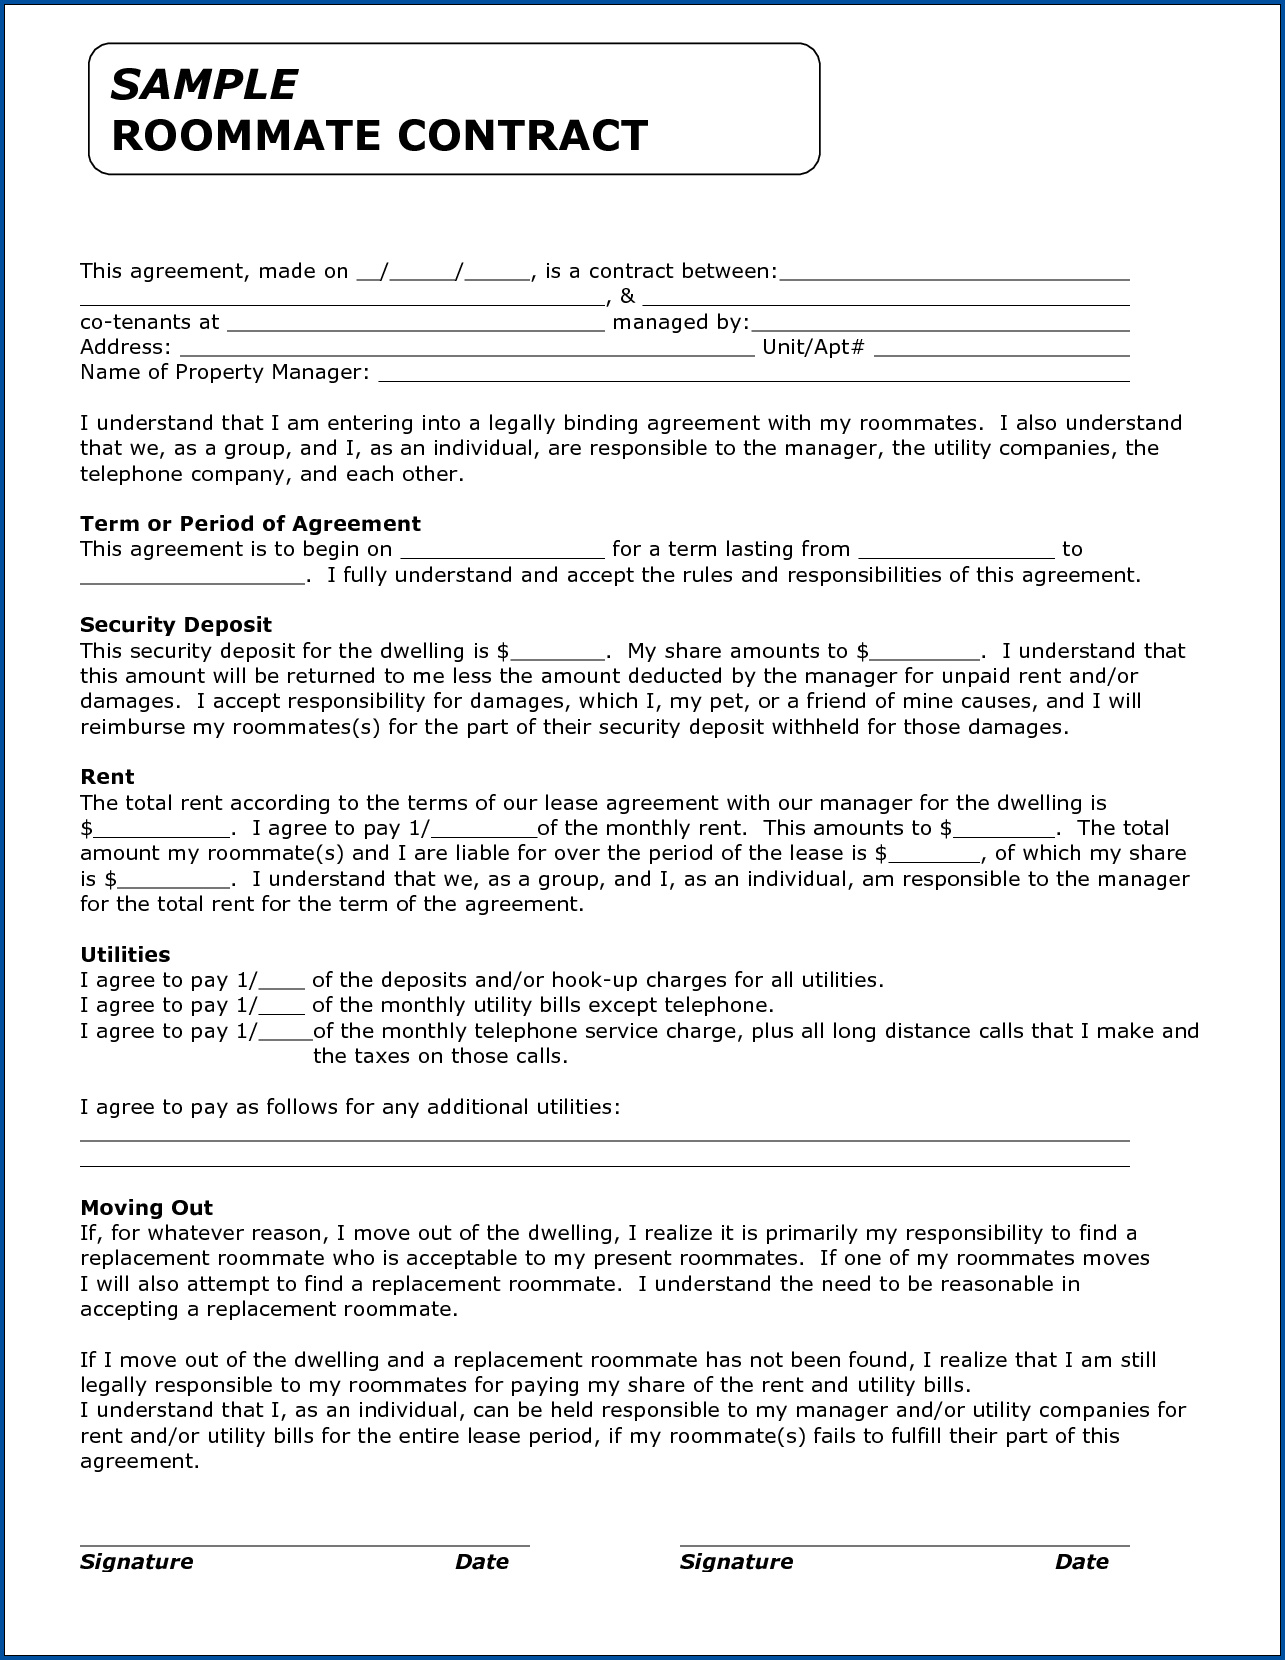 Example of Roommate Agreements Template